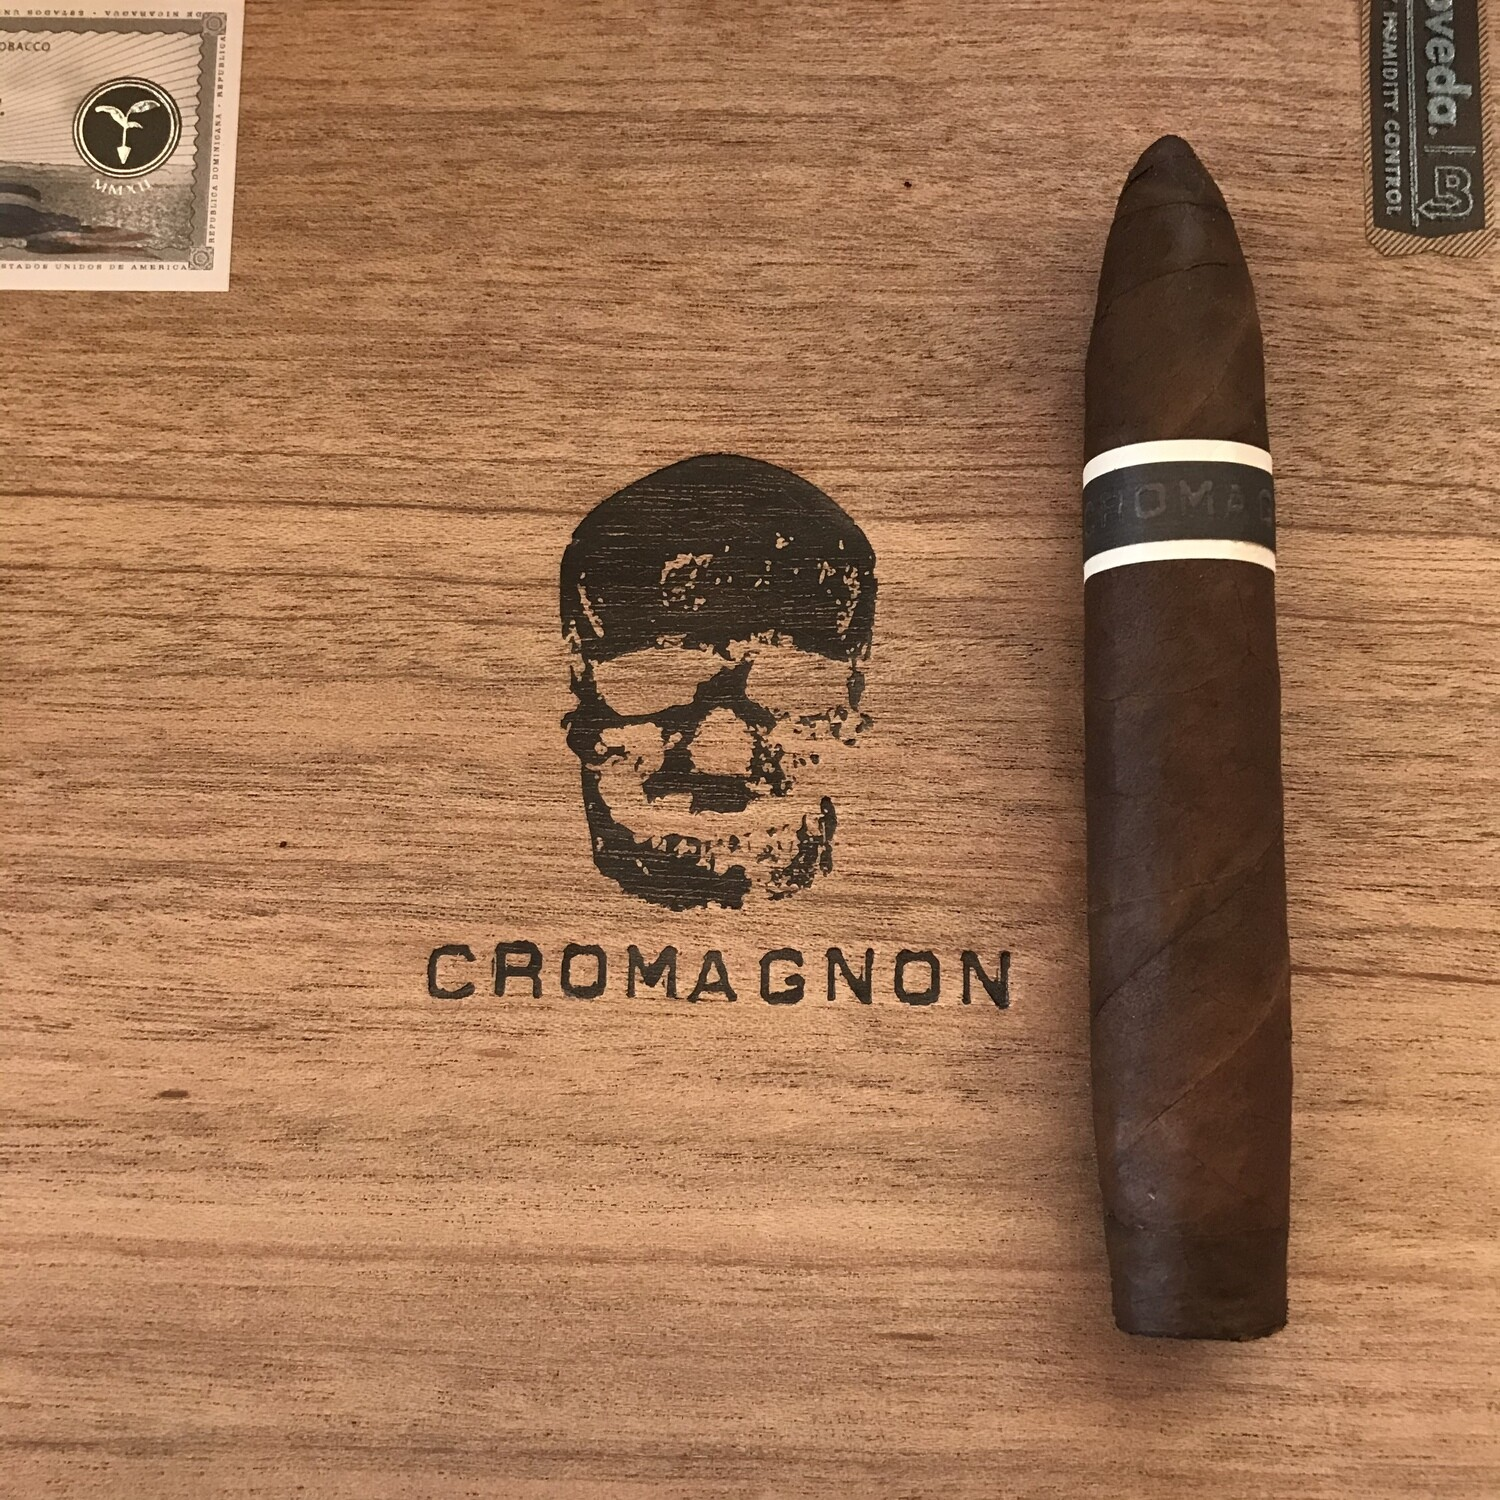 Mode 5 5x50 Short Perfecto, CroMagnon, 24's